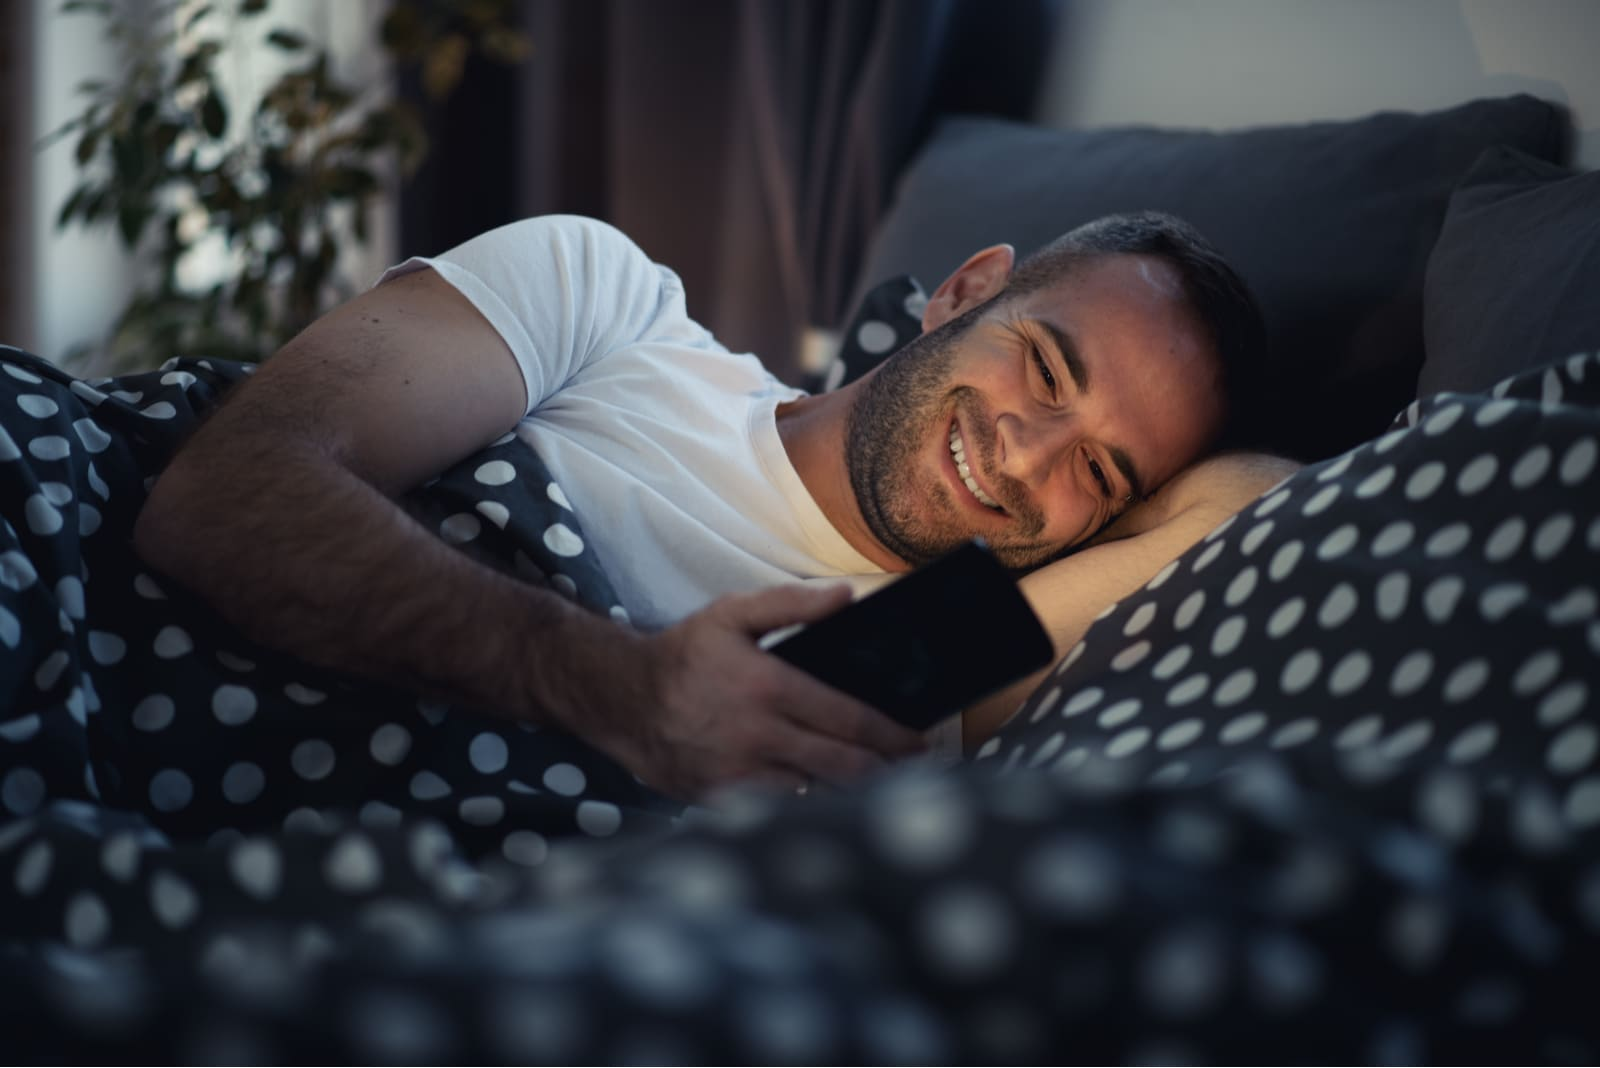 a smiling happy man lying in bed and using a smartphone